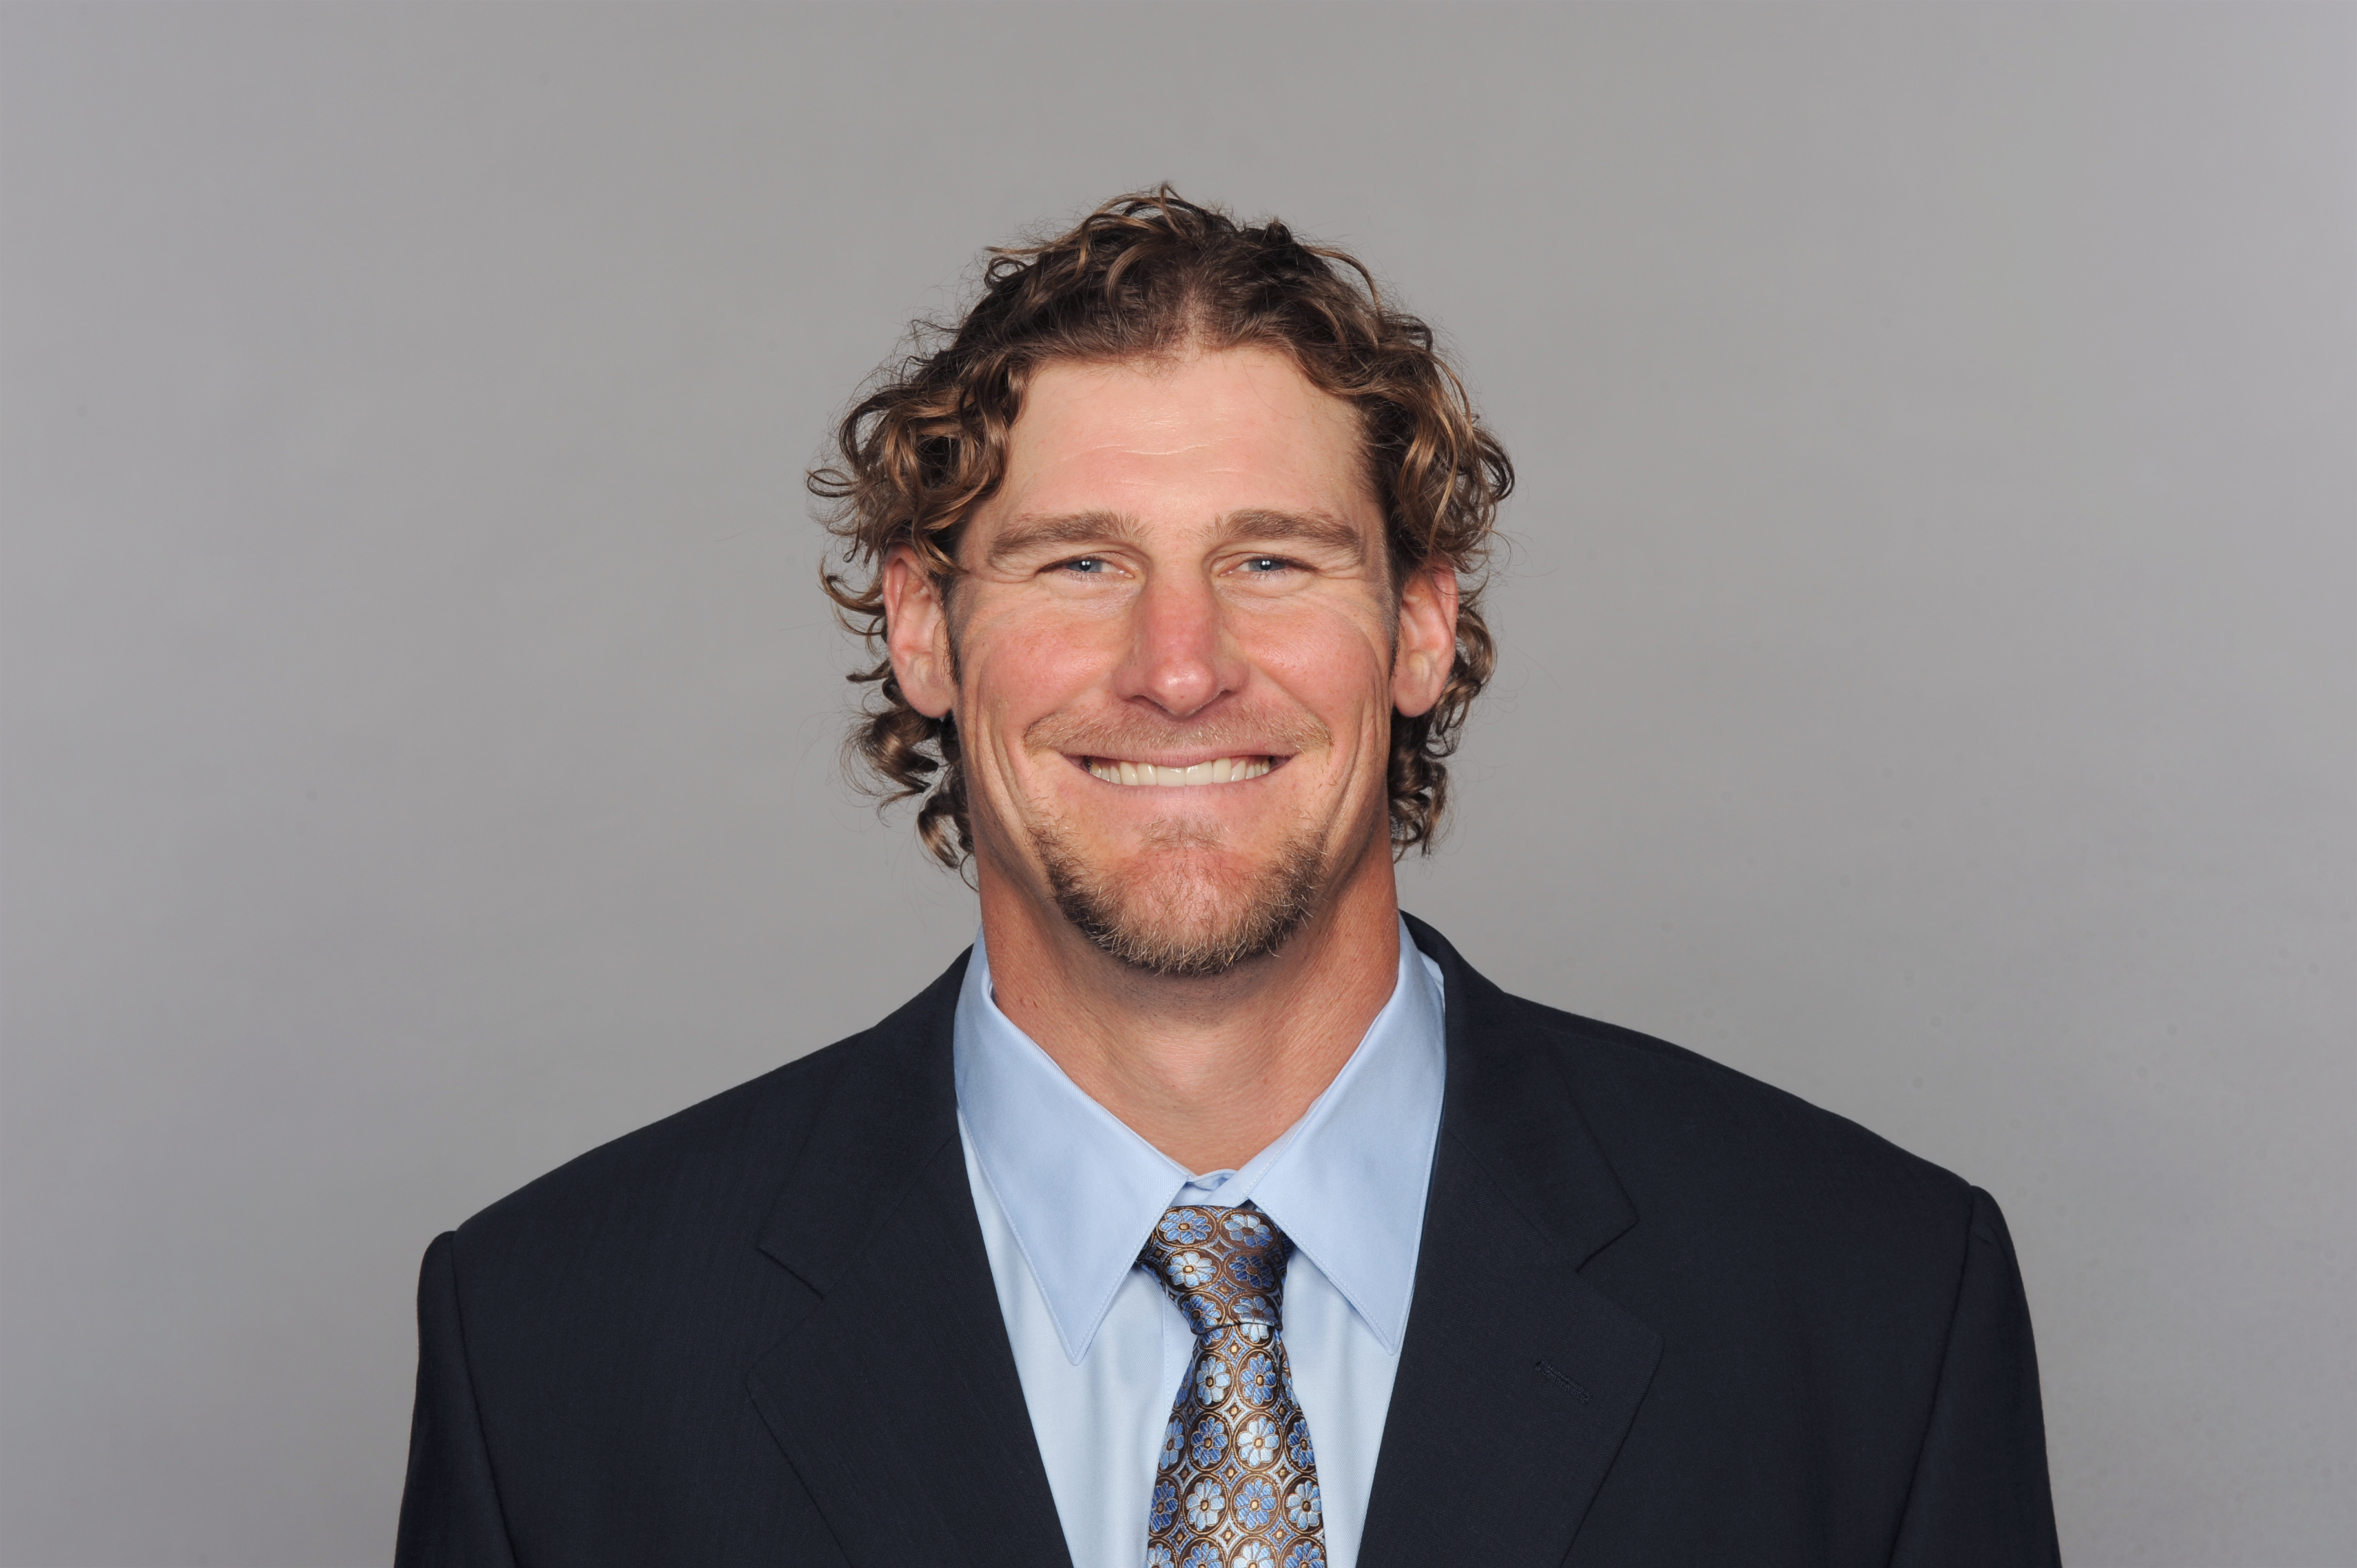 The hair is now gone, but the smile remains the same: Dan Campbell is the new Dolphins coach. (Getty)